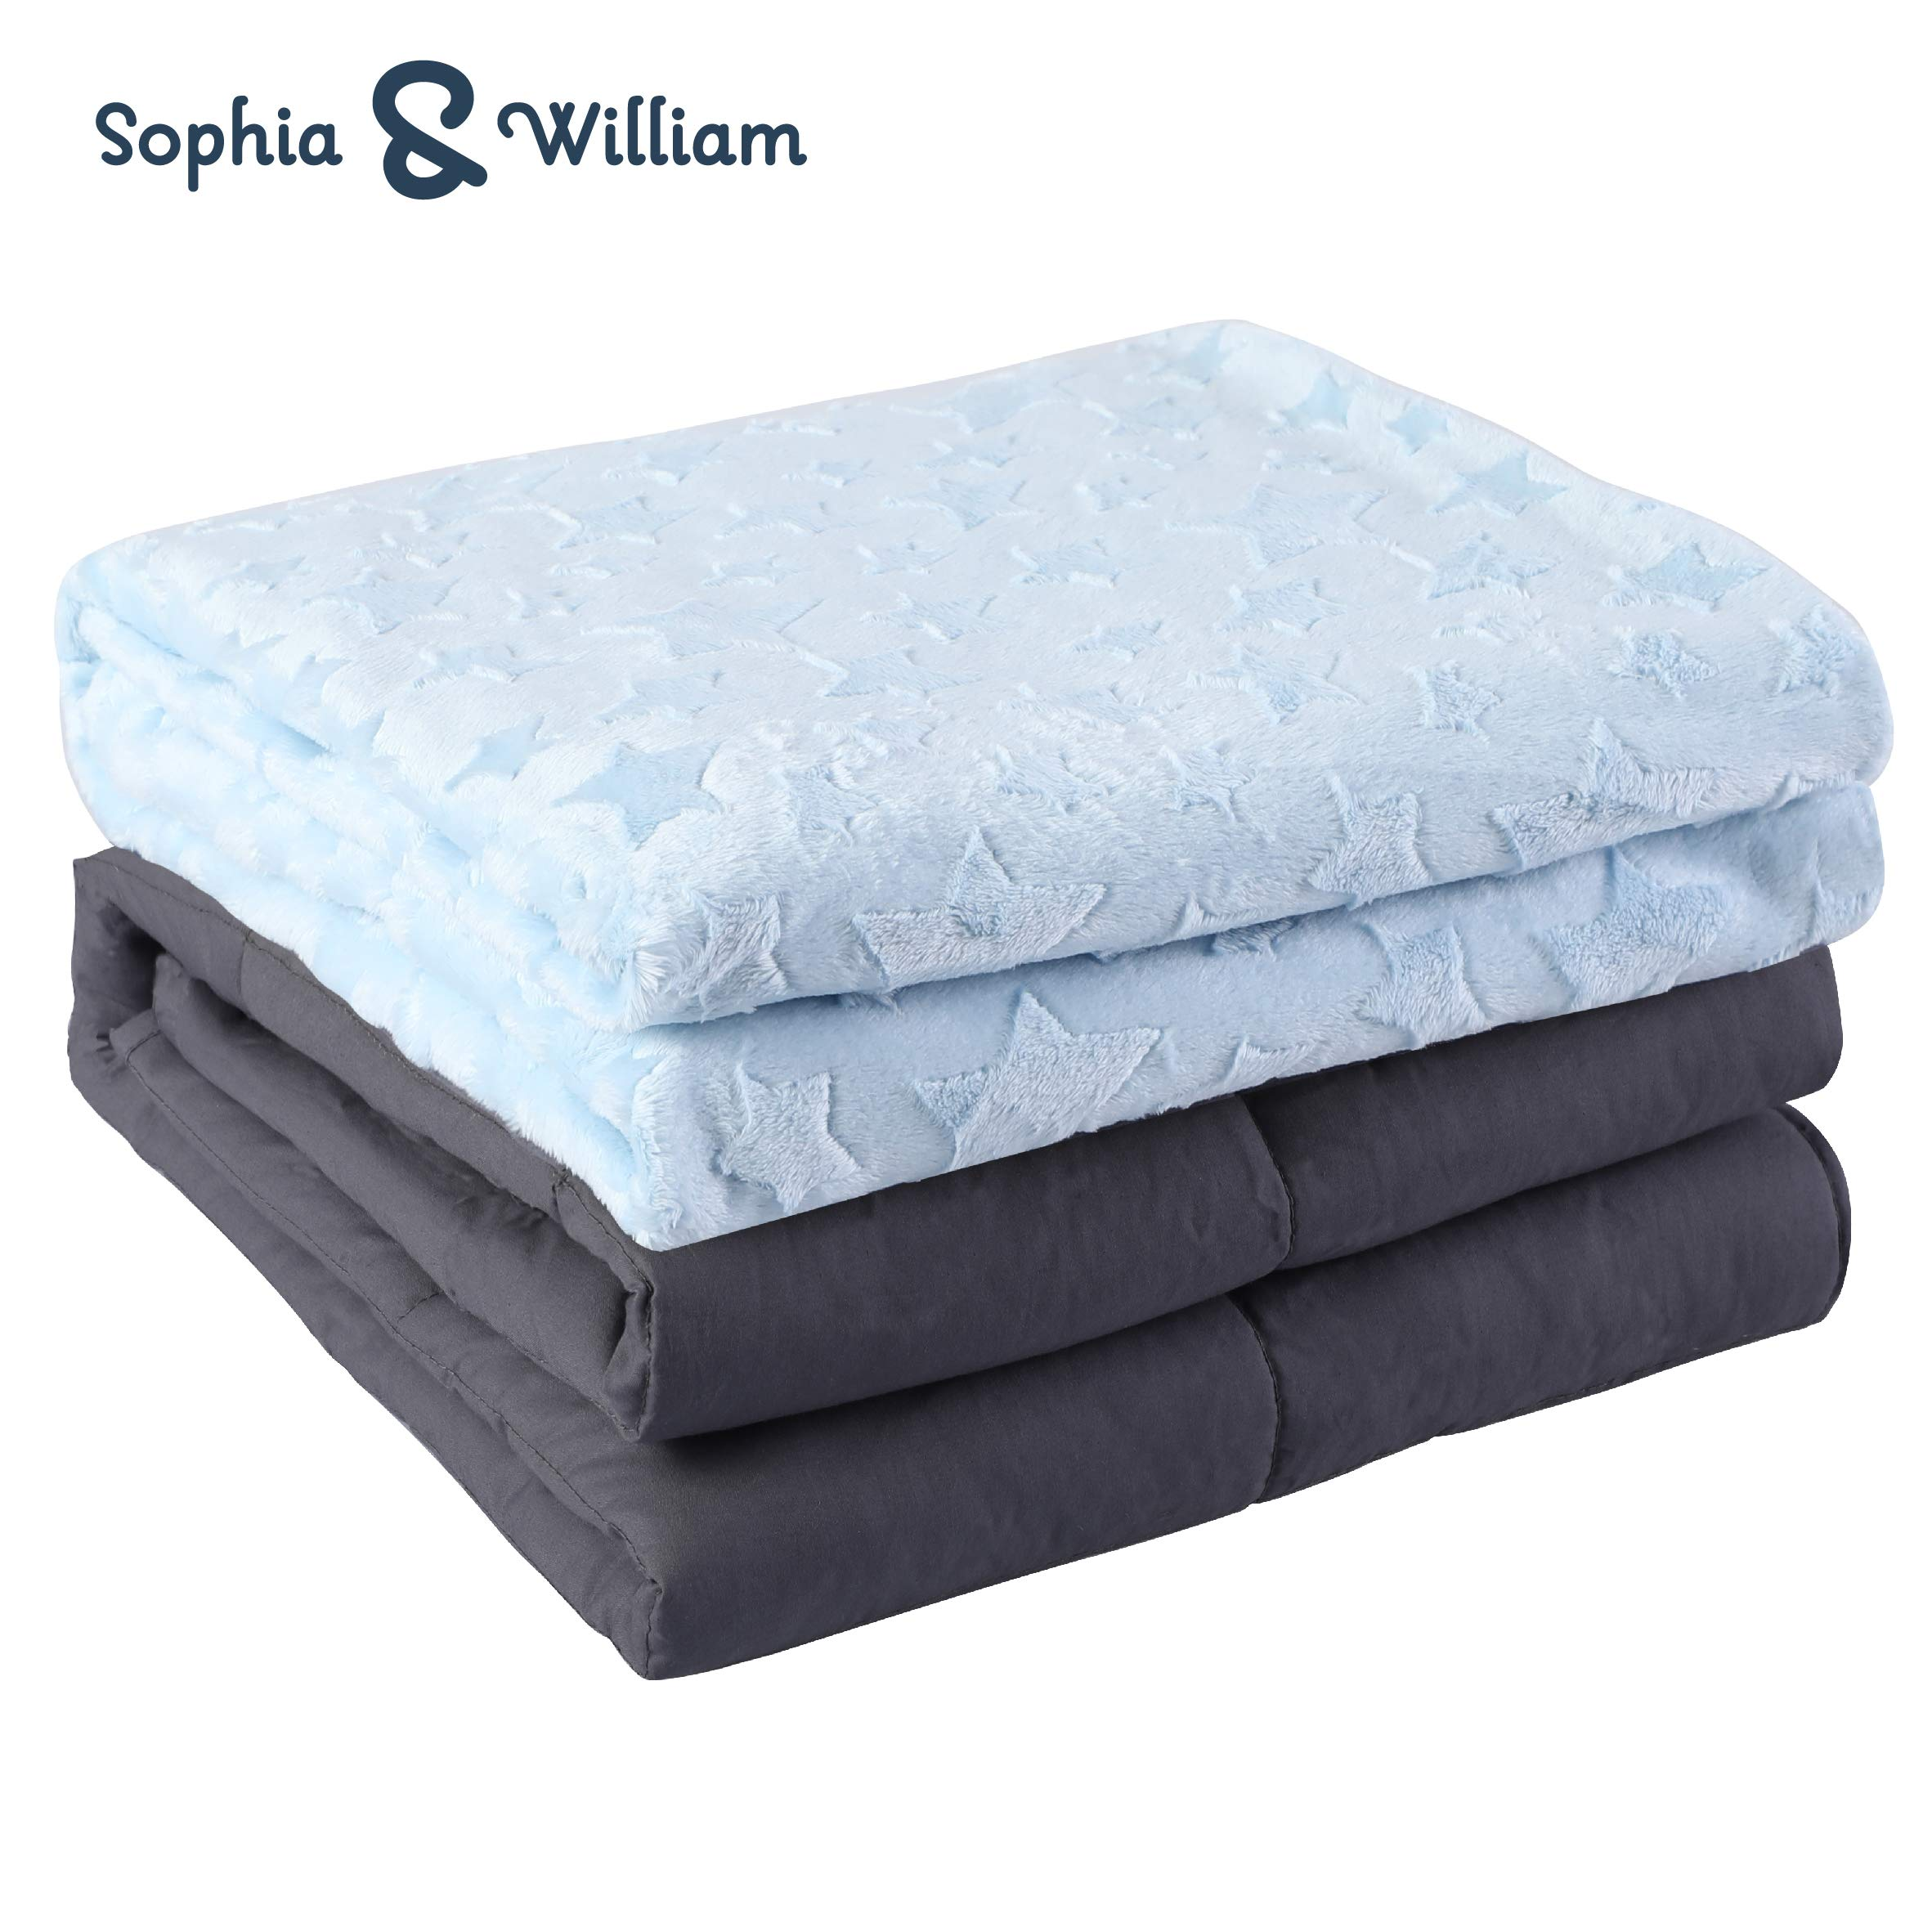 Sophia&William Weighted Blanket, 36''x48'', 5 lbs, Cotton, Light Blue, Reversible Cover Included